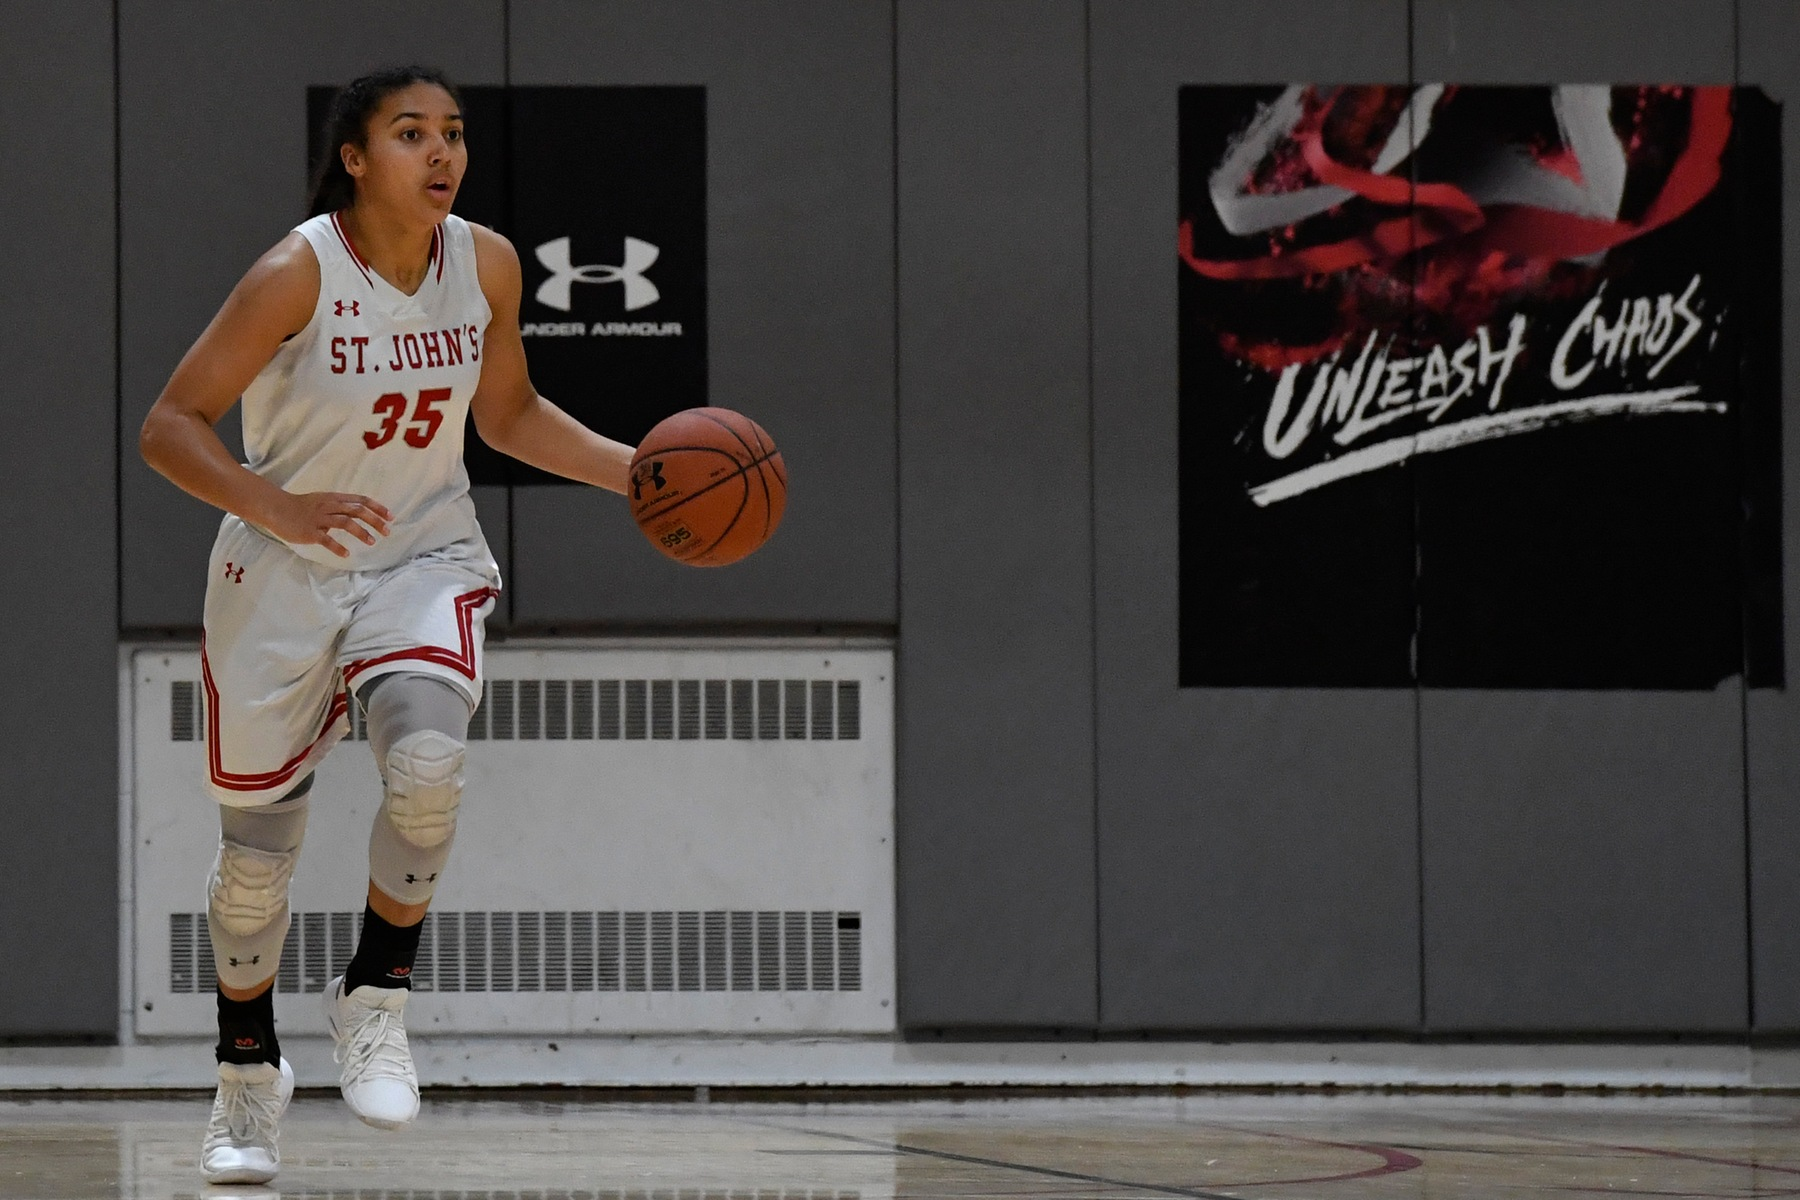 Sophomore Azzi Fudd (shown in and earlier game) leads St. John's to victory over Bishop McNamara.